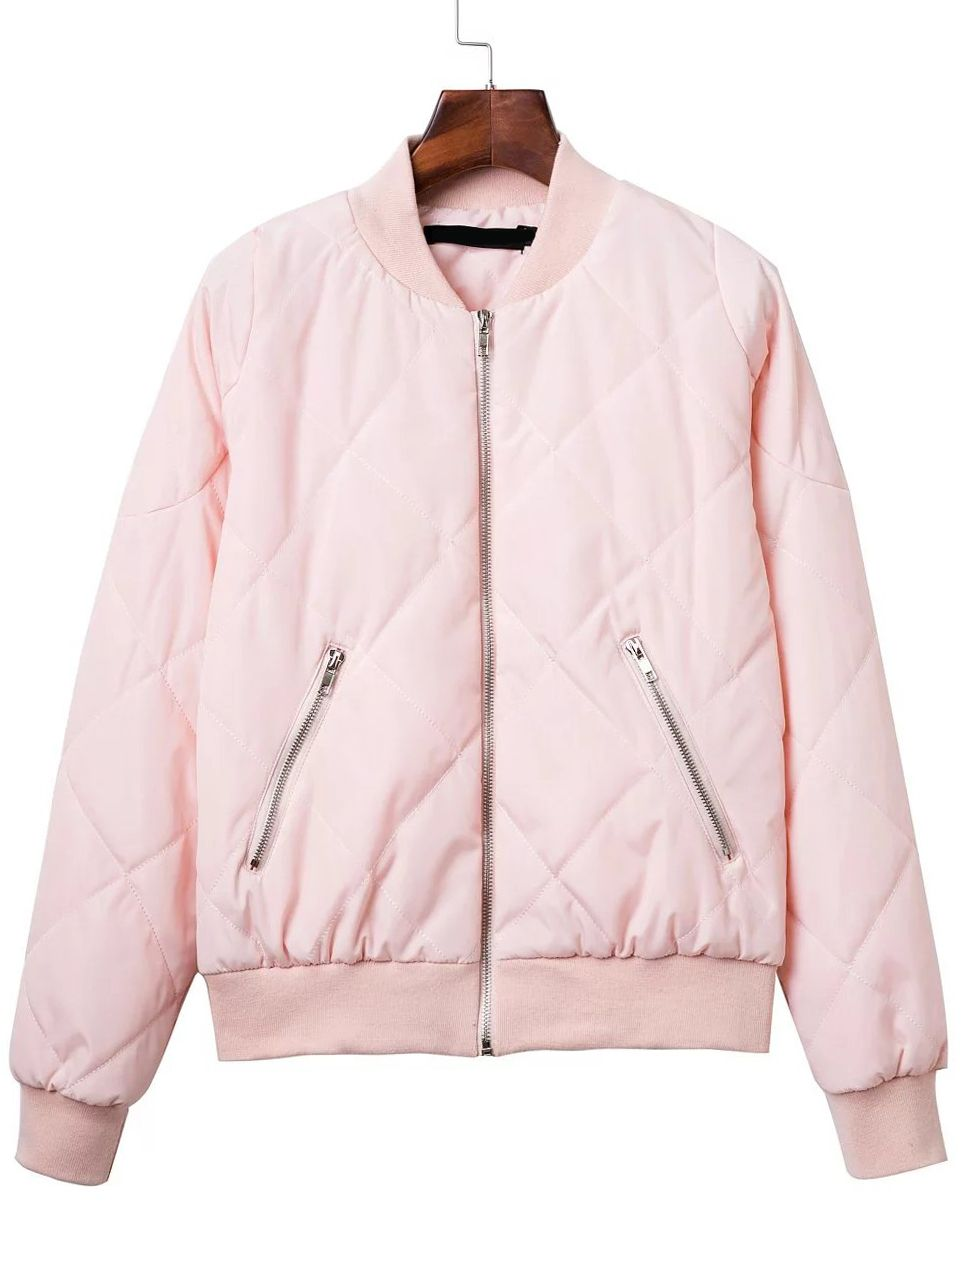 Pink Diamond Quilted Bomber Jacket With Zipper Shein Sheinside Black Bomber Jacket Women Quilted Bomber Jacket Casual Fall Jacket [ 1288 x 967 Pixel ]